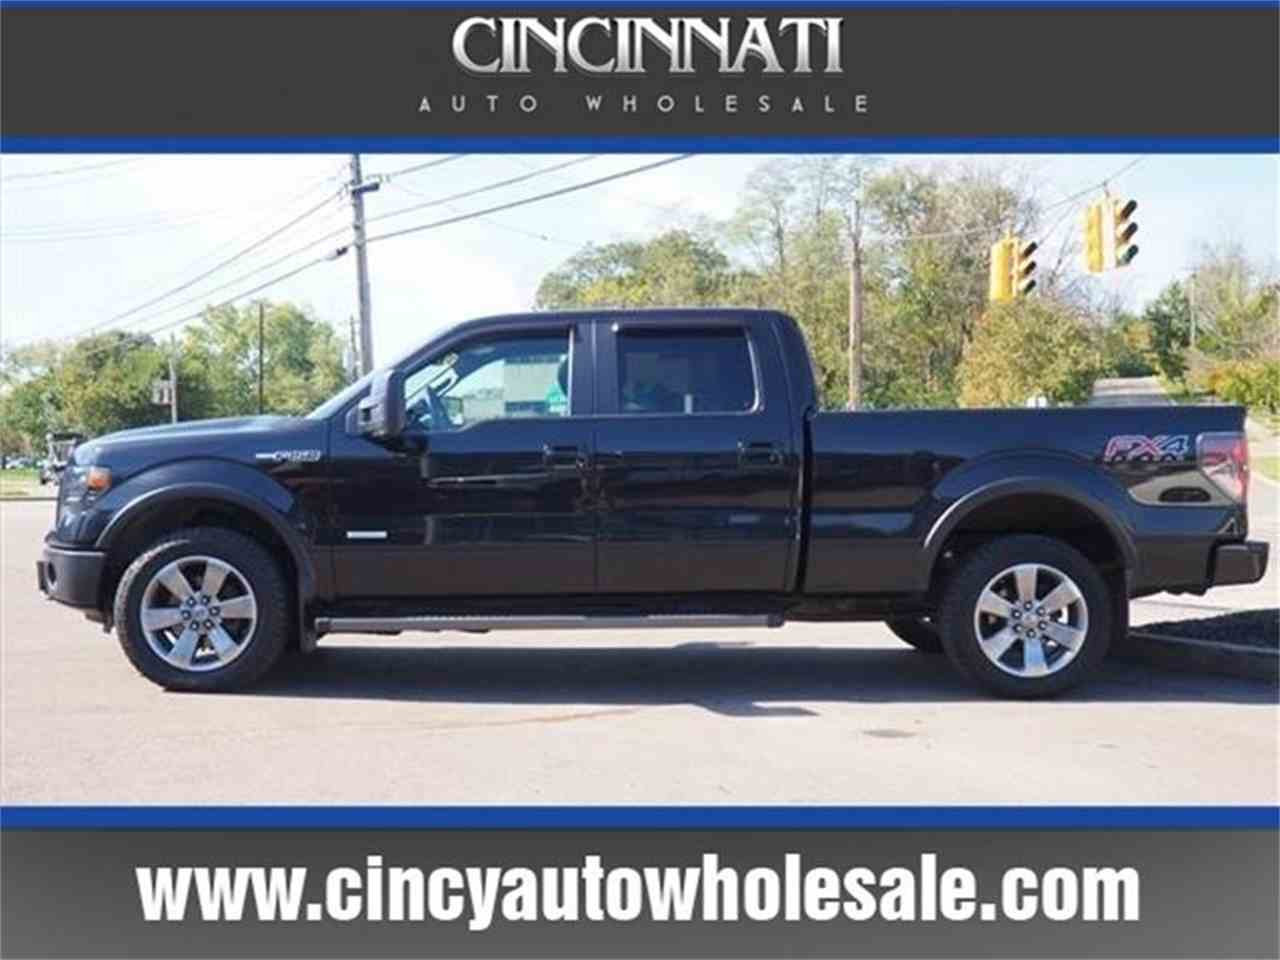 2013 Ford F150 for Sale - CC-1041516